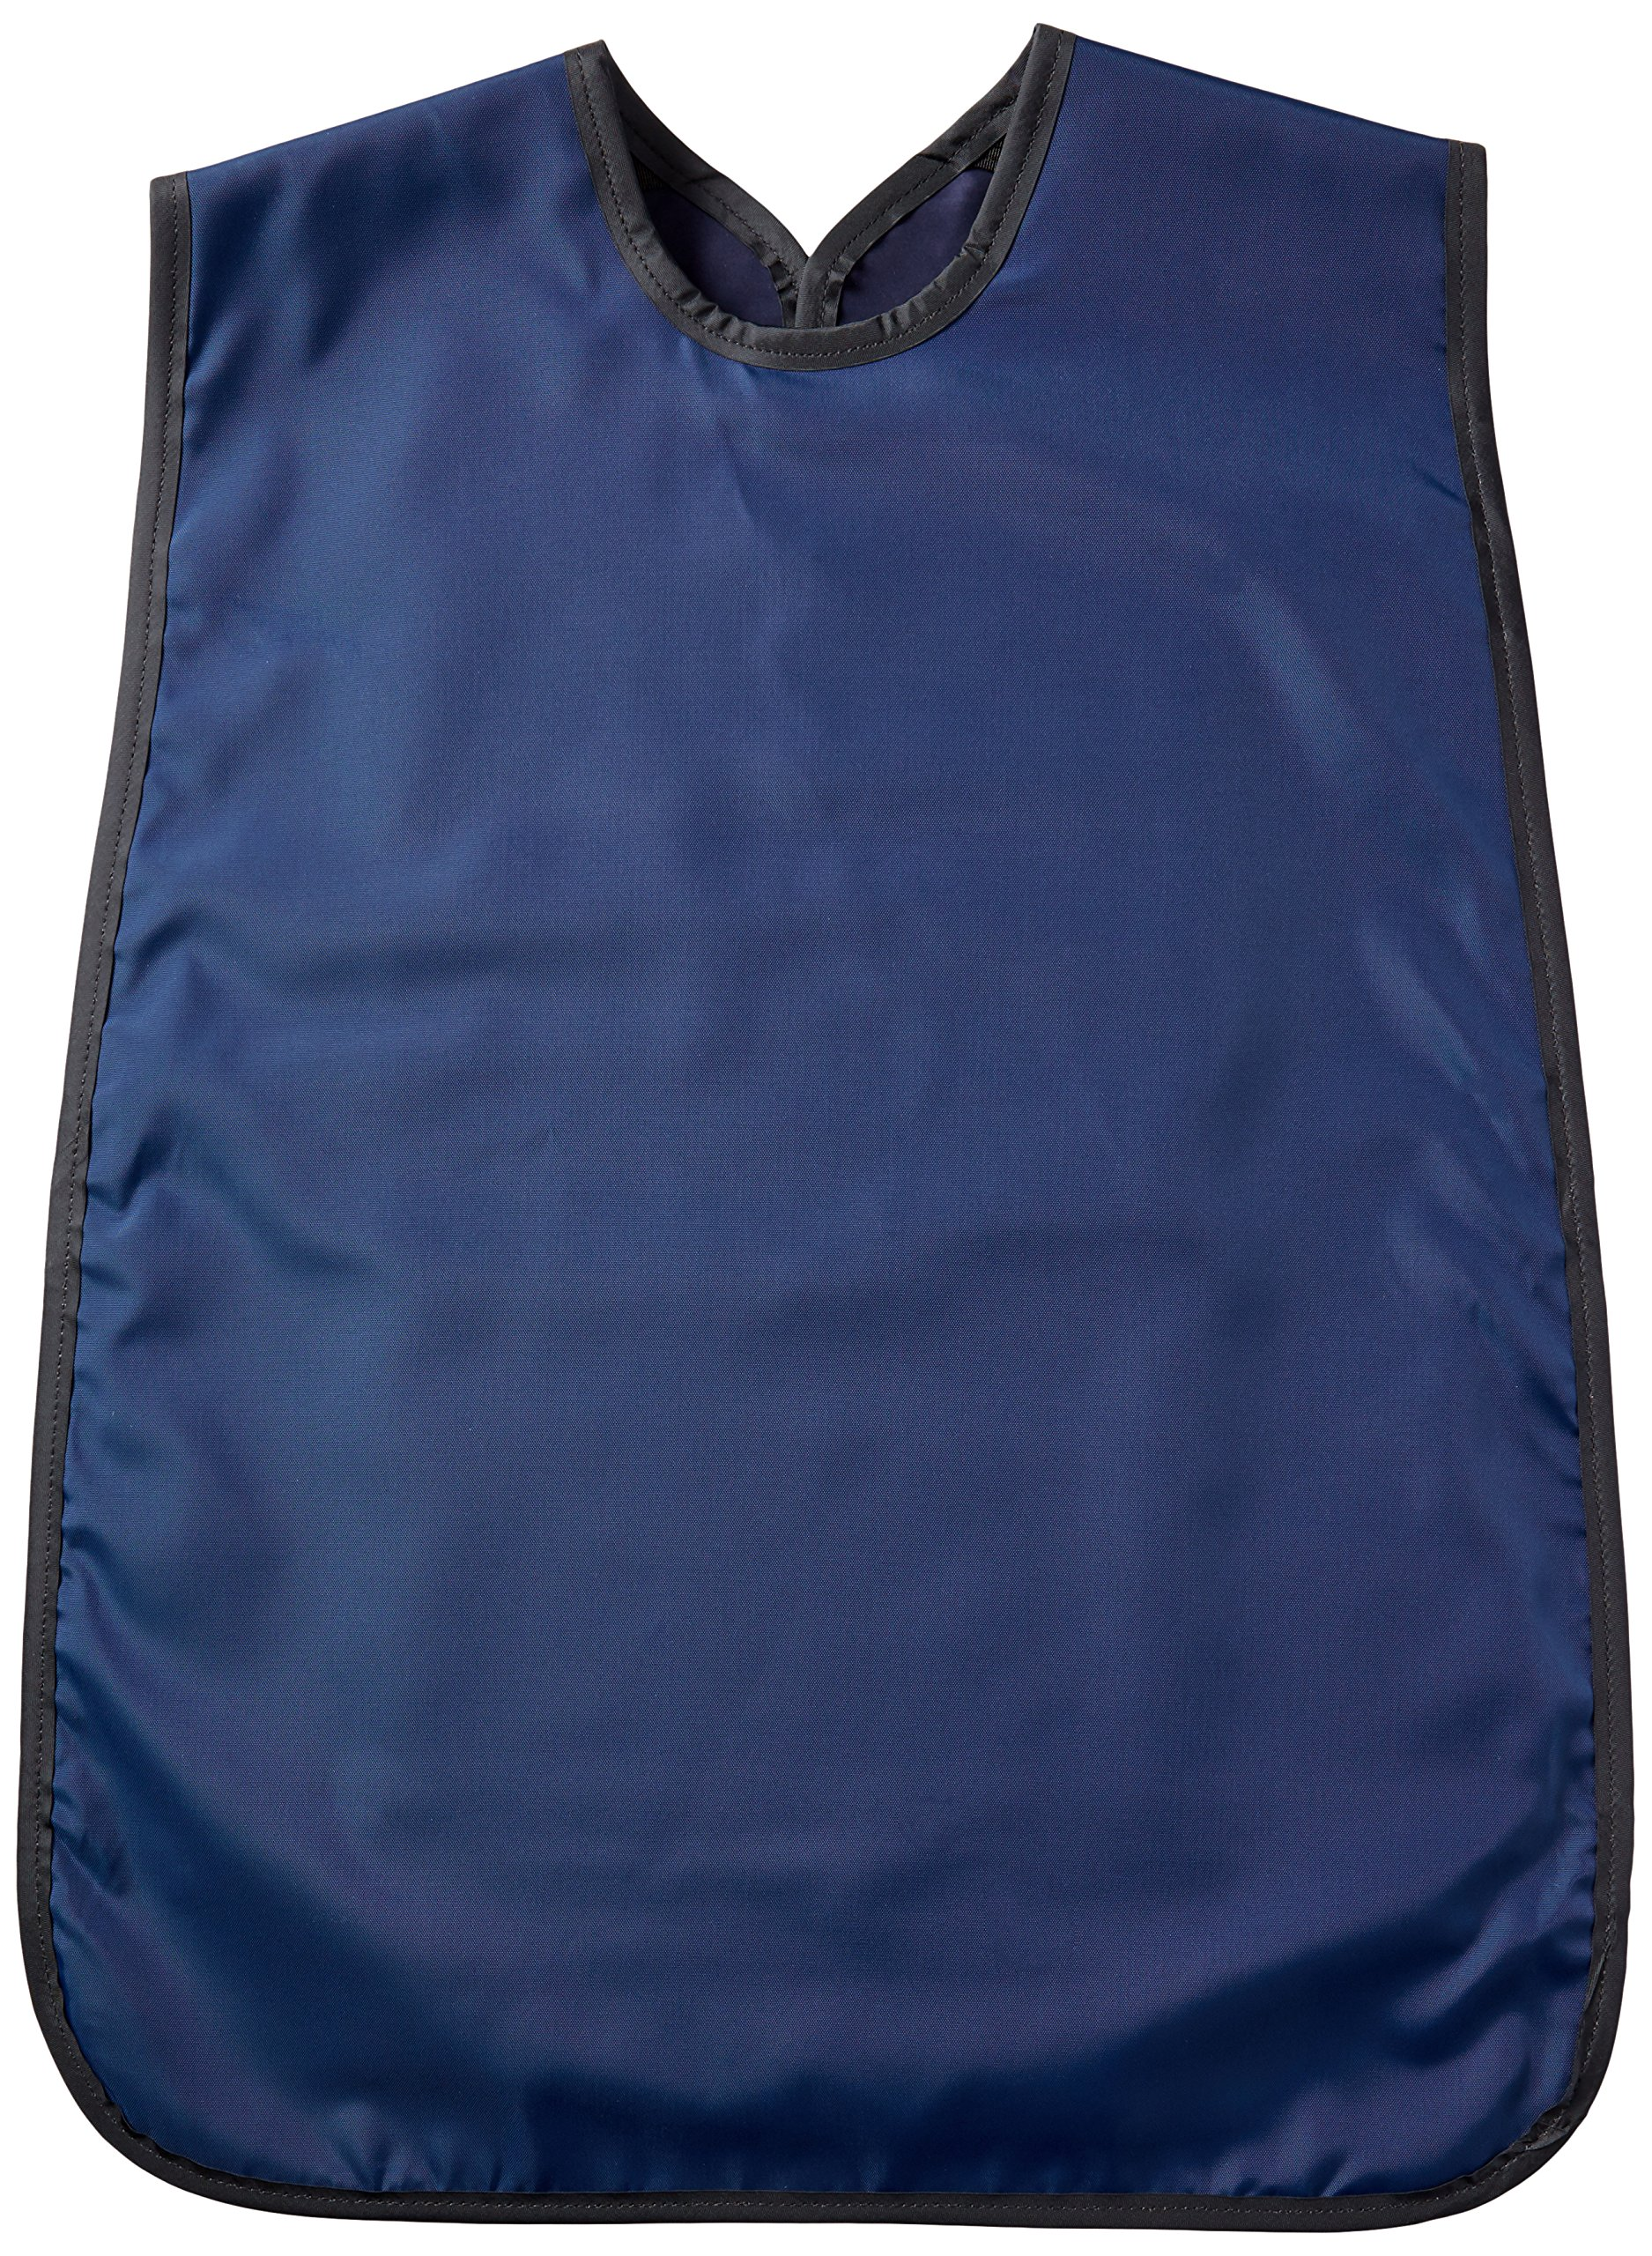 Flow Dental 75061-22 Adult Panoramic Apron, Lead Rubber, 24'' x 27'' Size, Navy Blue